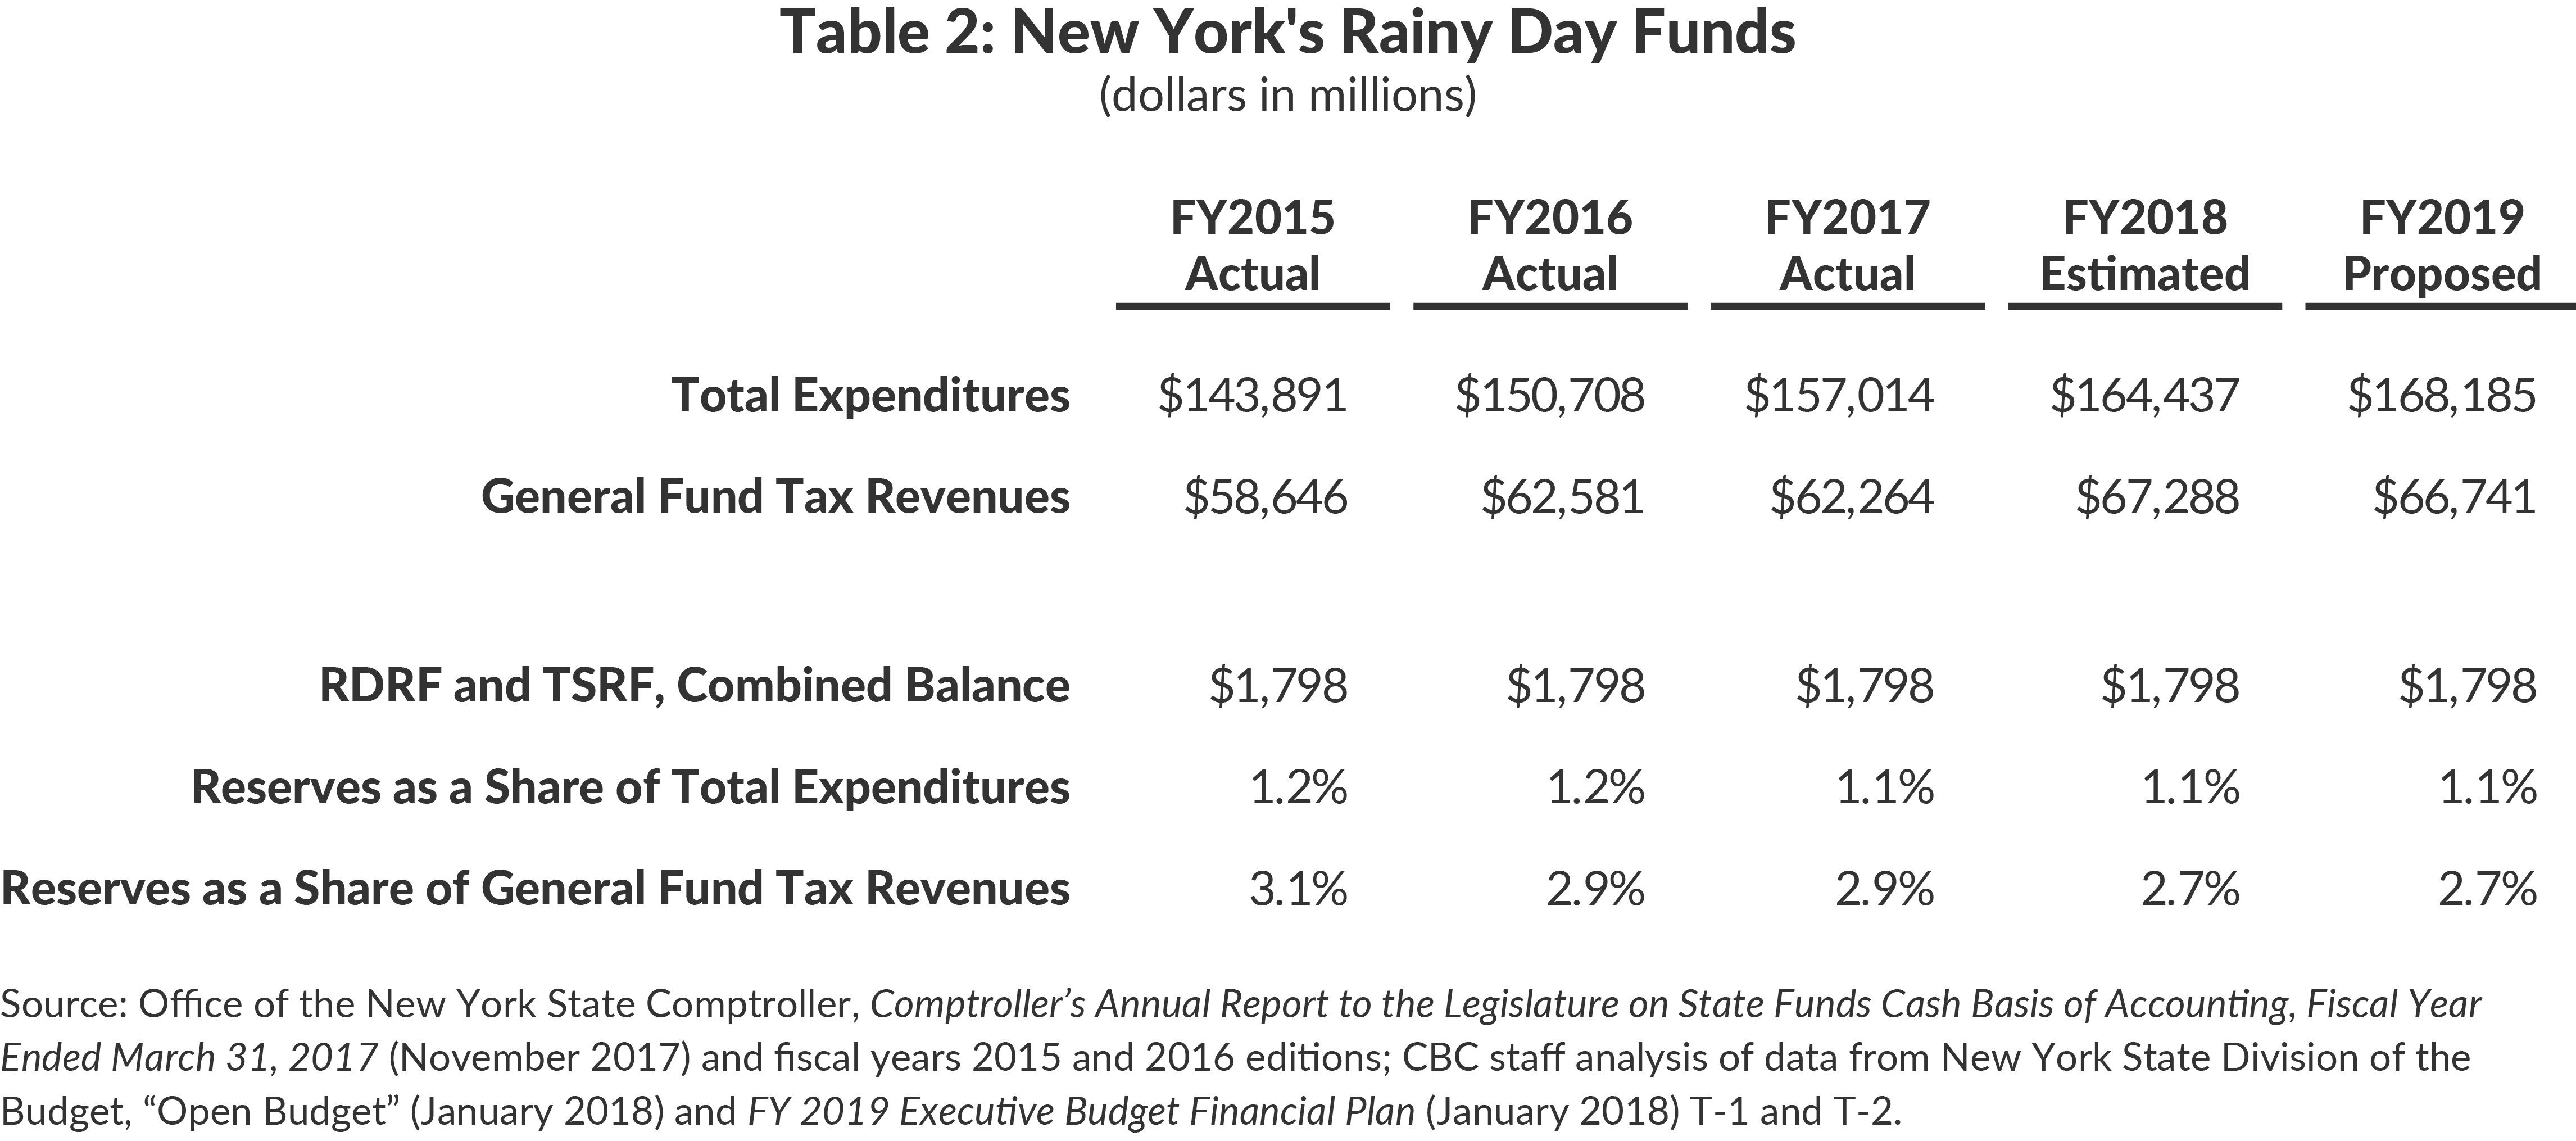 Table 2: New York's Rainy Day Funds